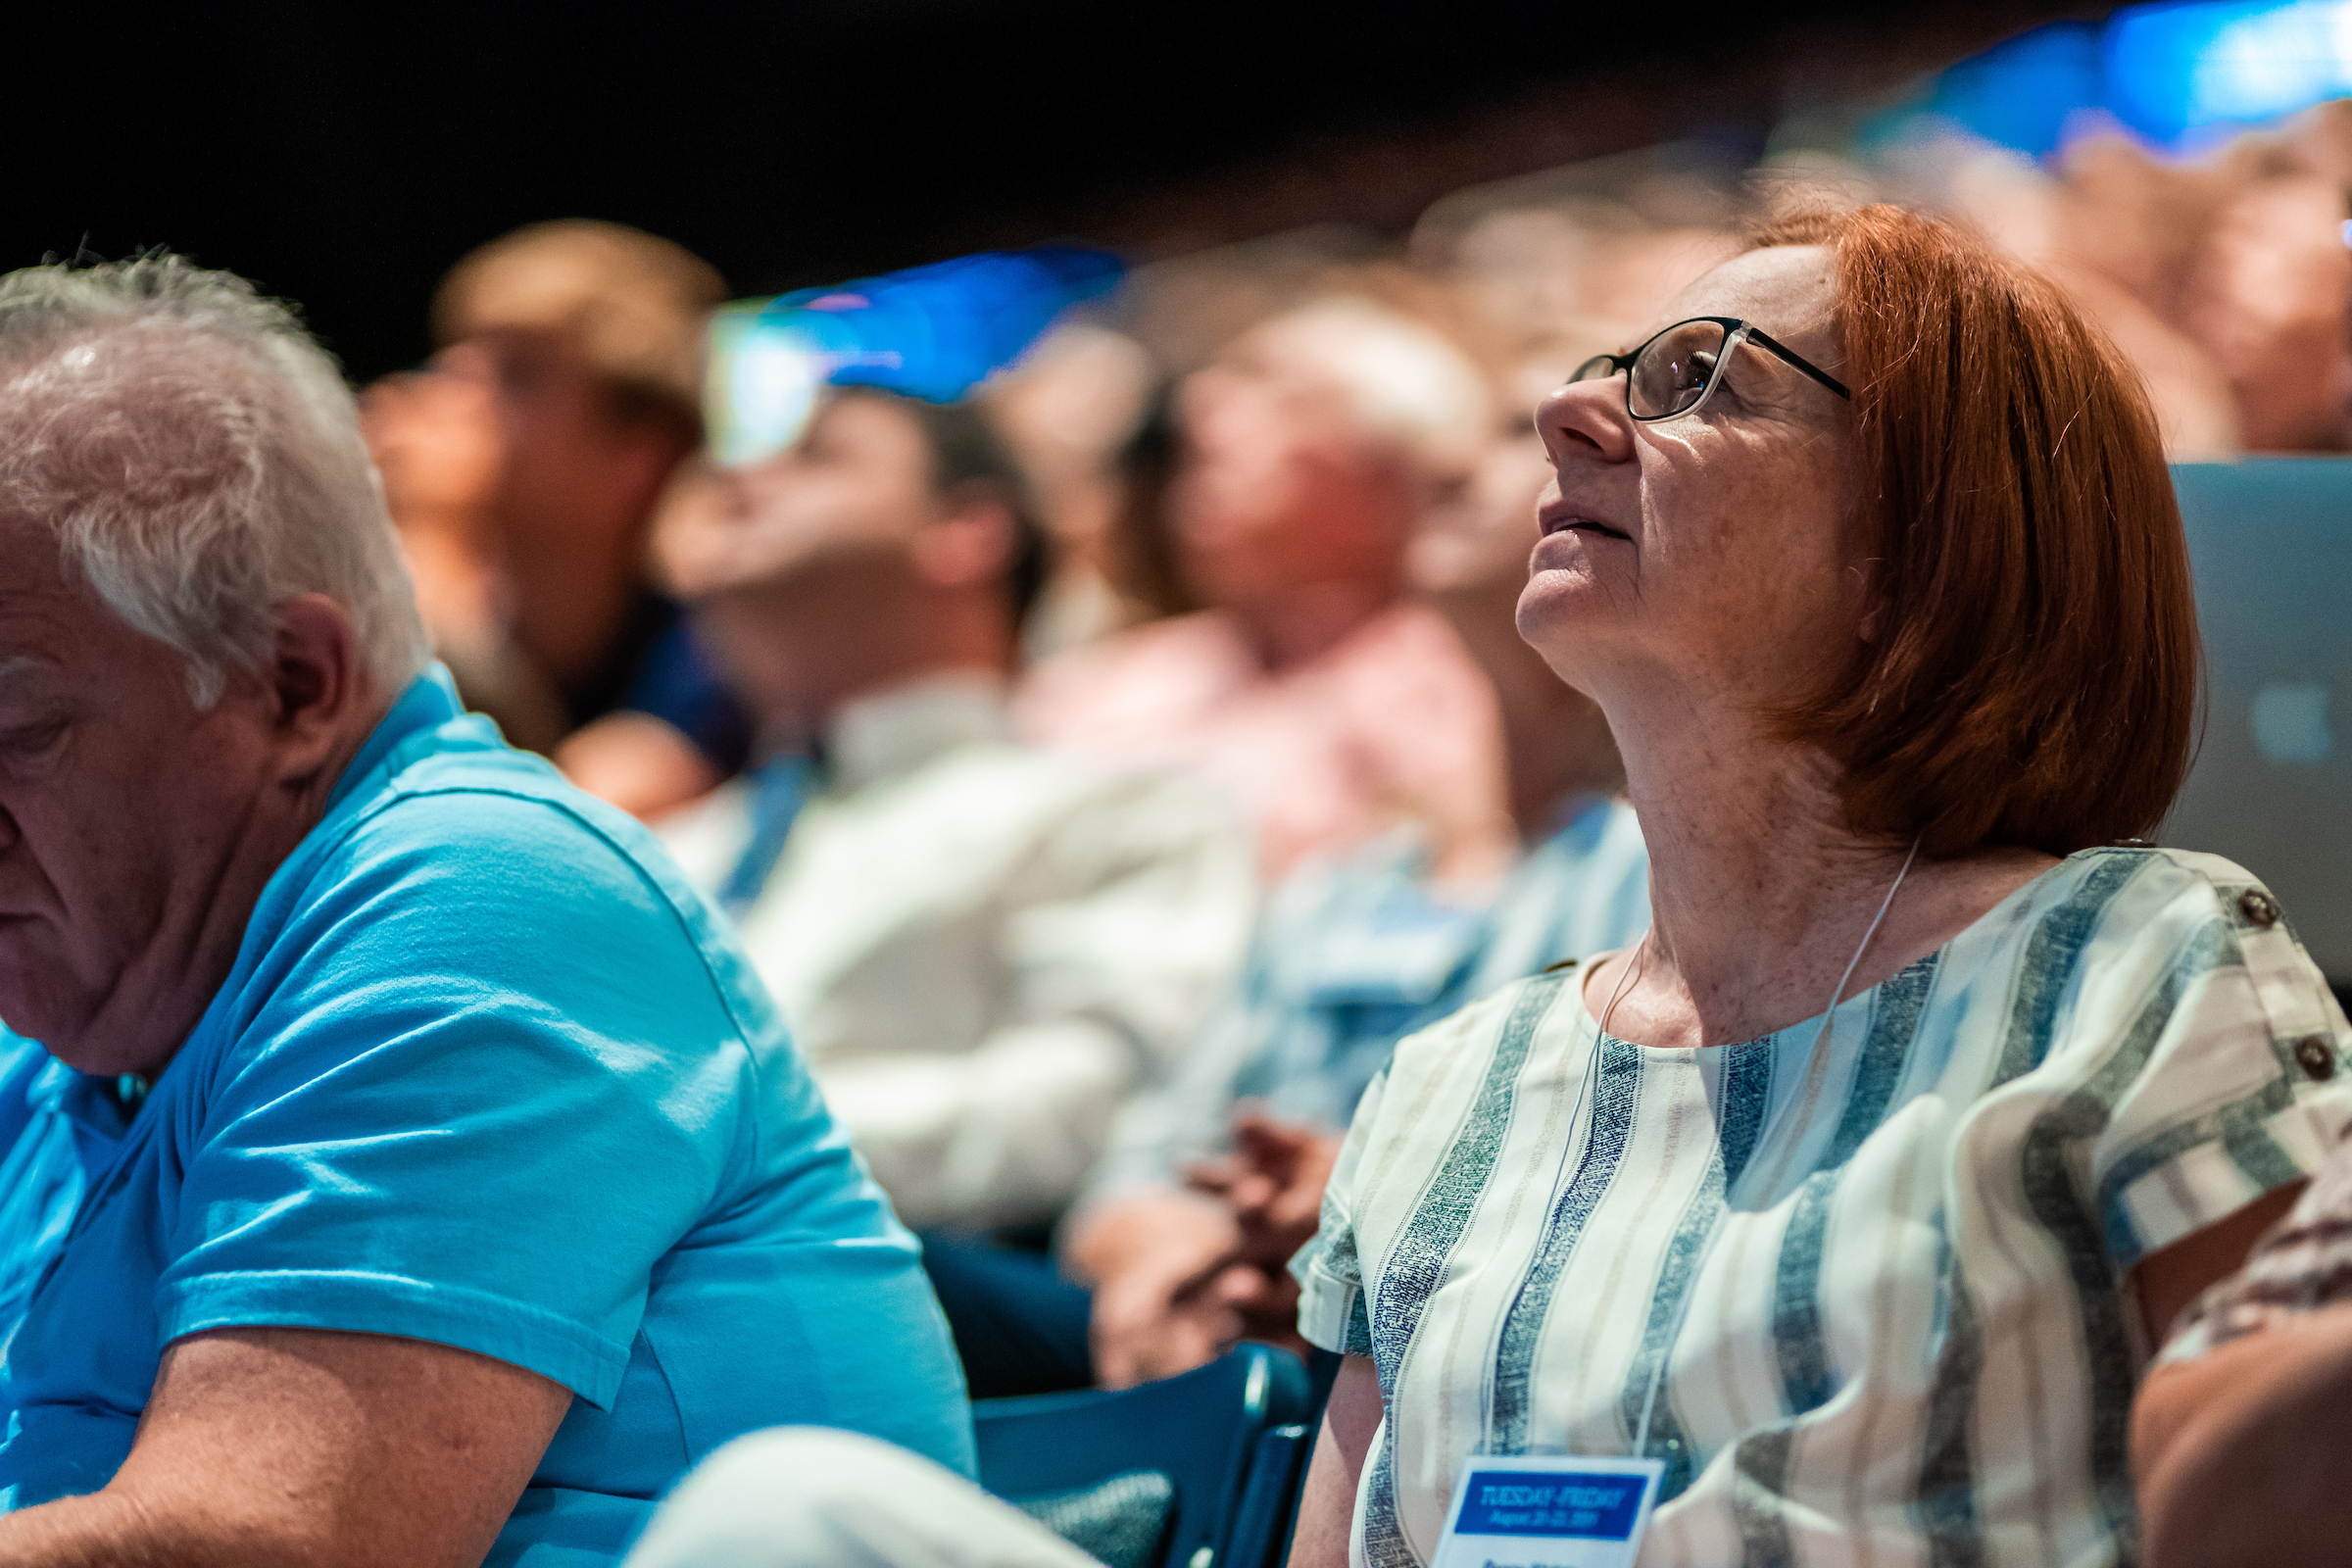 Education Week attendees listen and take notes during devotional at BYU Education Week in Provo, Utah, on Tuesday, Aug. 20, 2019.